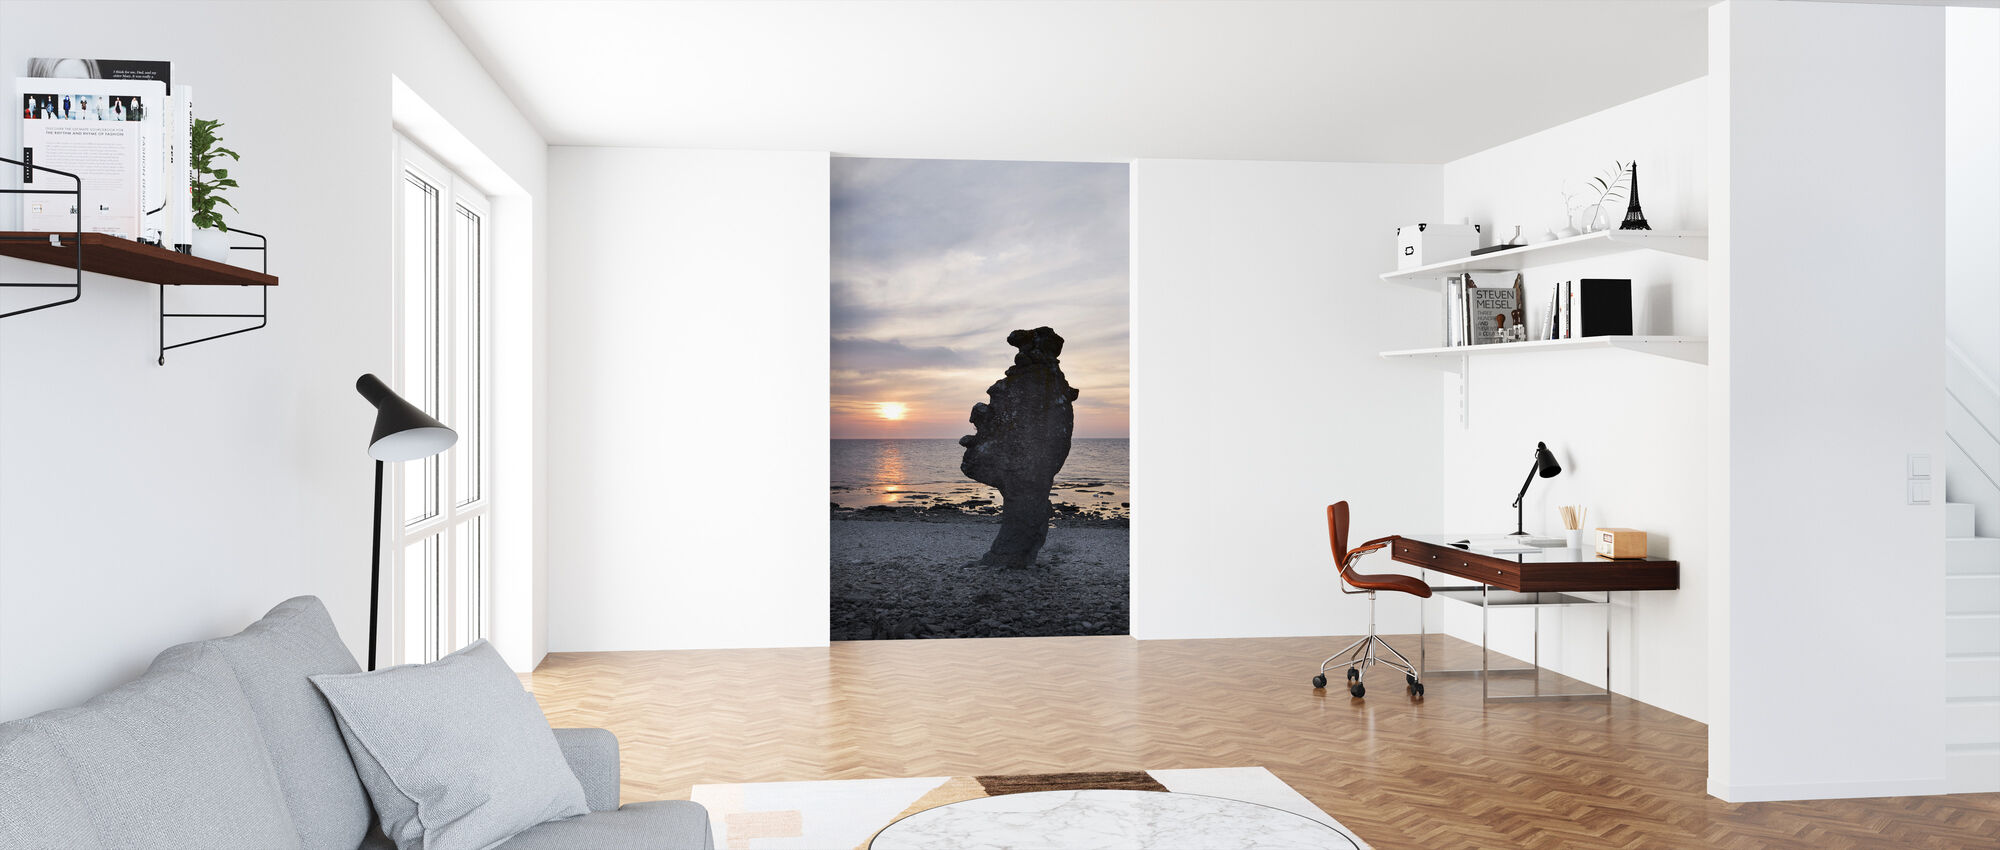 Gotland Rauk - Wallpaper - Office